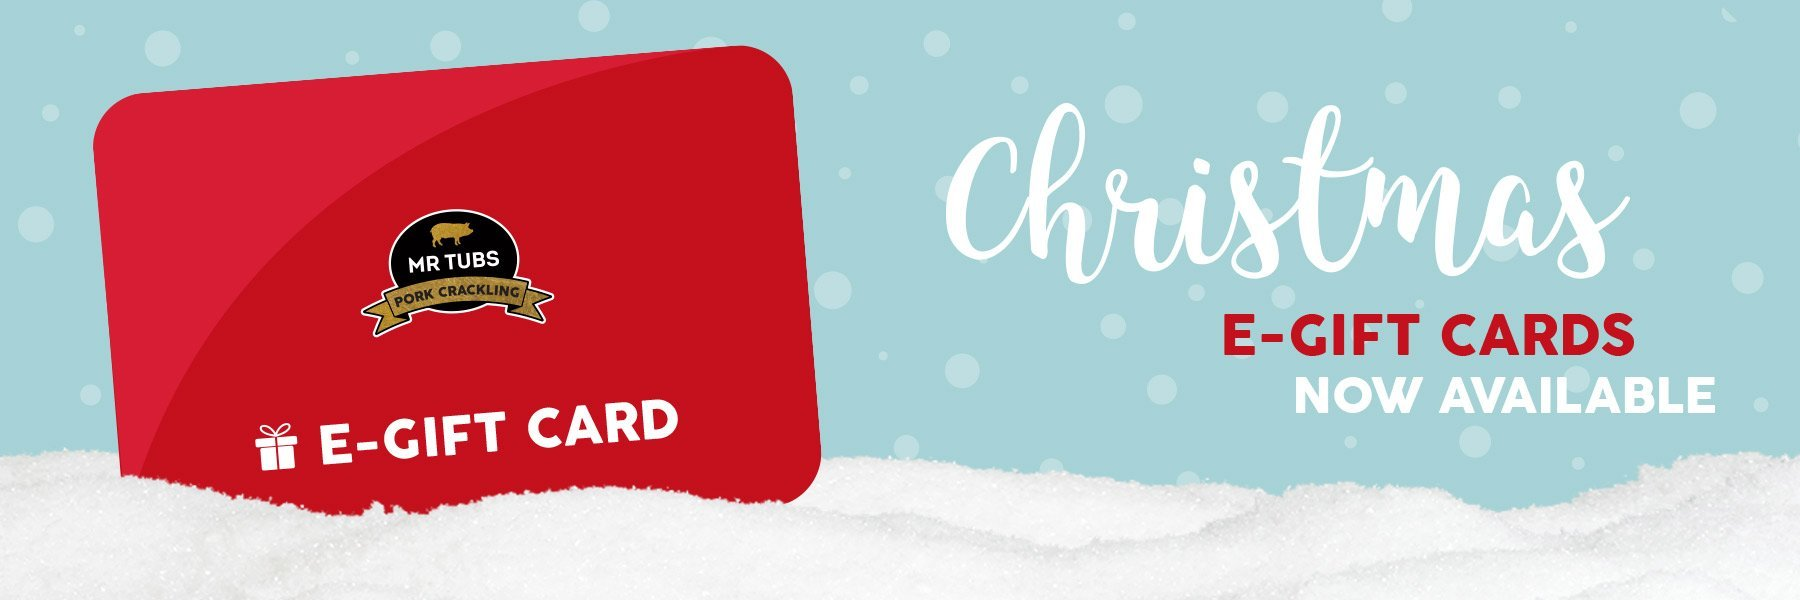 Mr-Tubs-Christmas-Gift-Cards---Slider